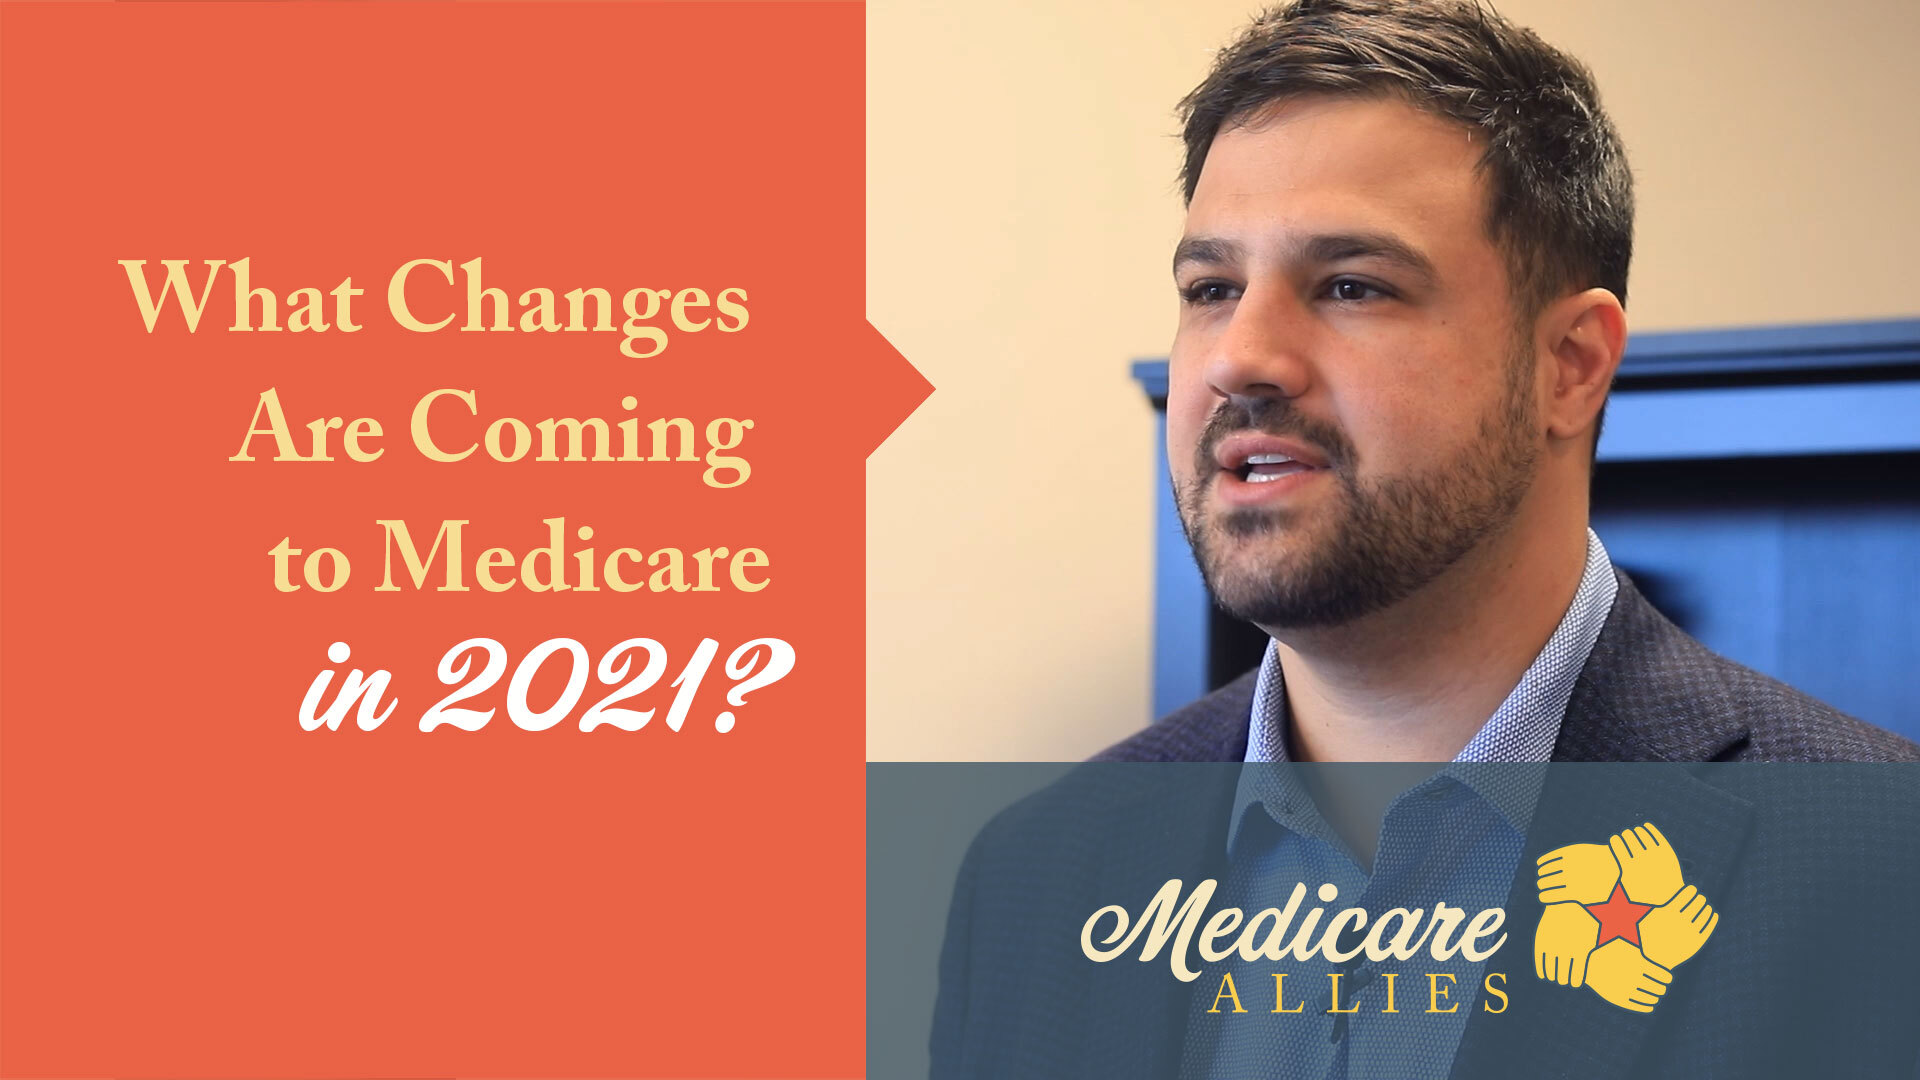 What Changes Are Coming to Medicare In 2021?